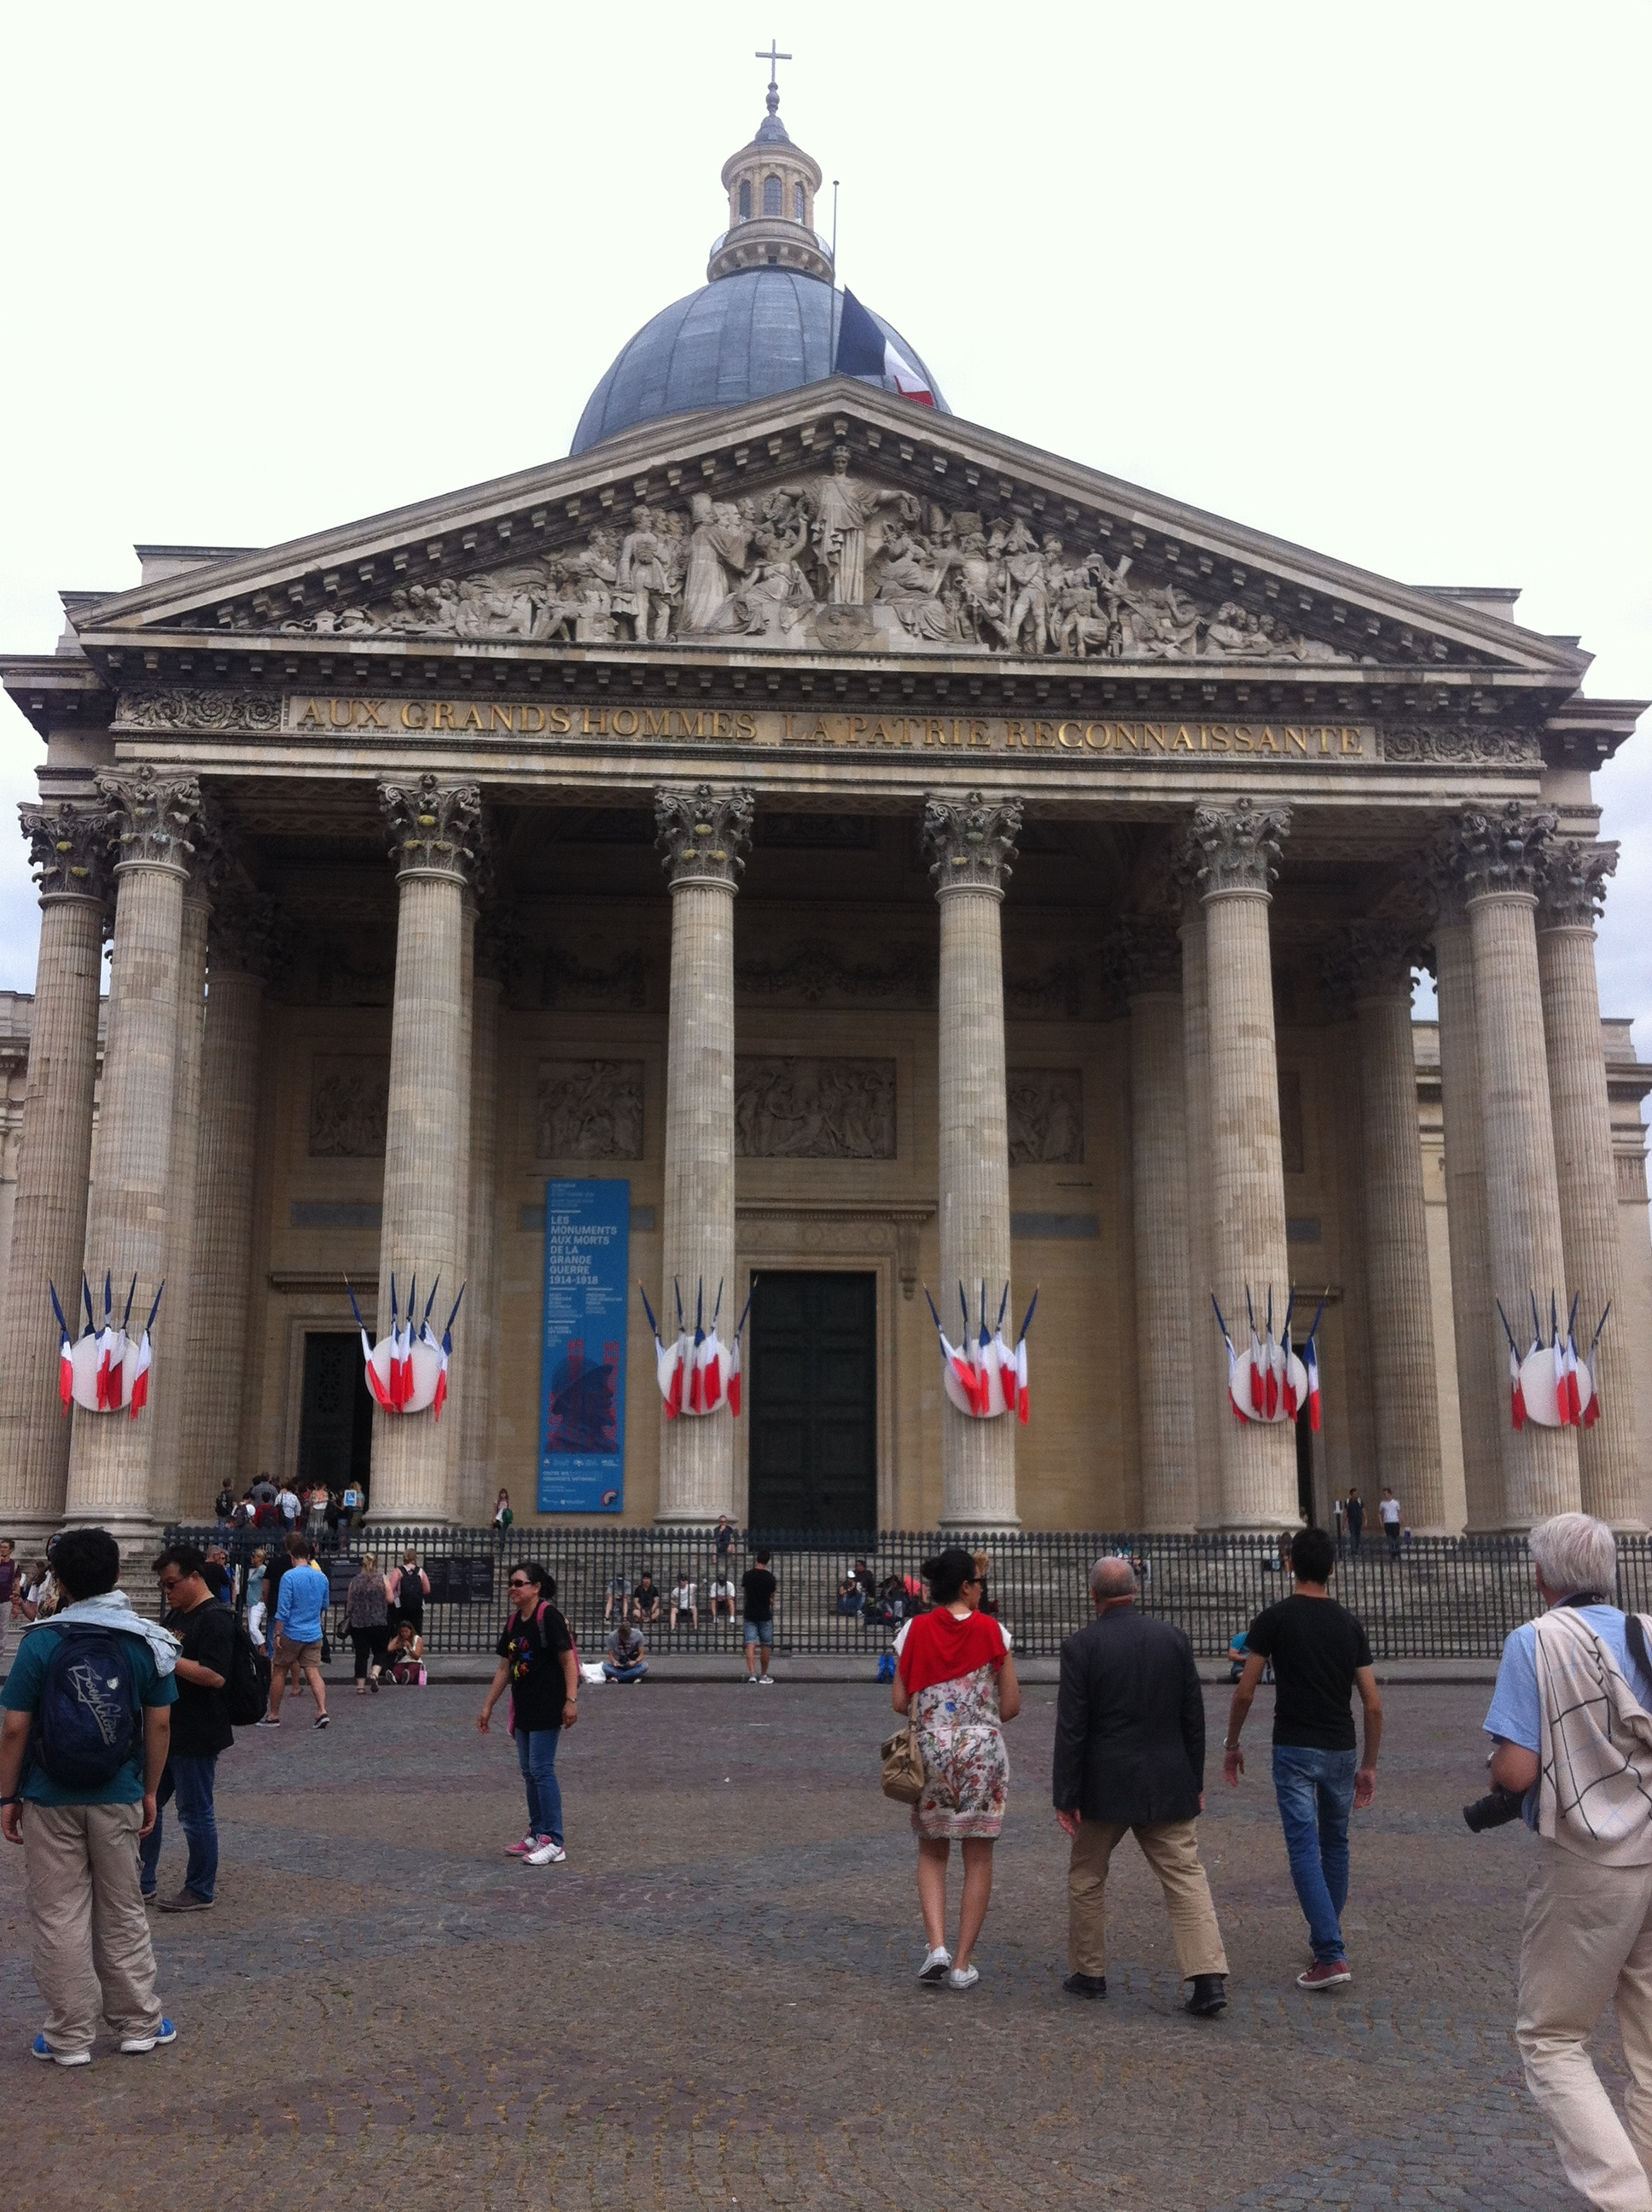 The Pantheon in mourning after attacks in Nice, 14 Juillet 2016.